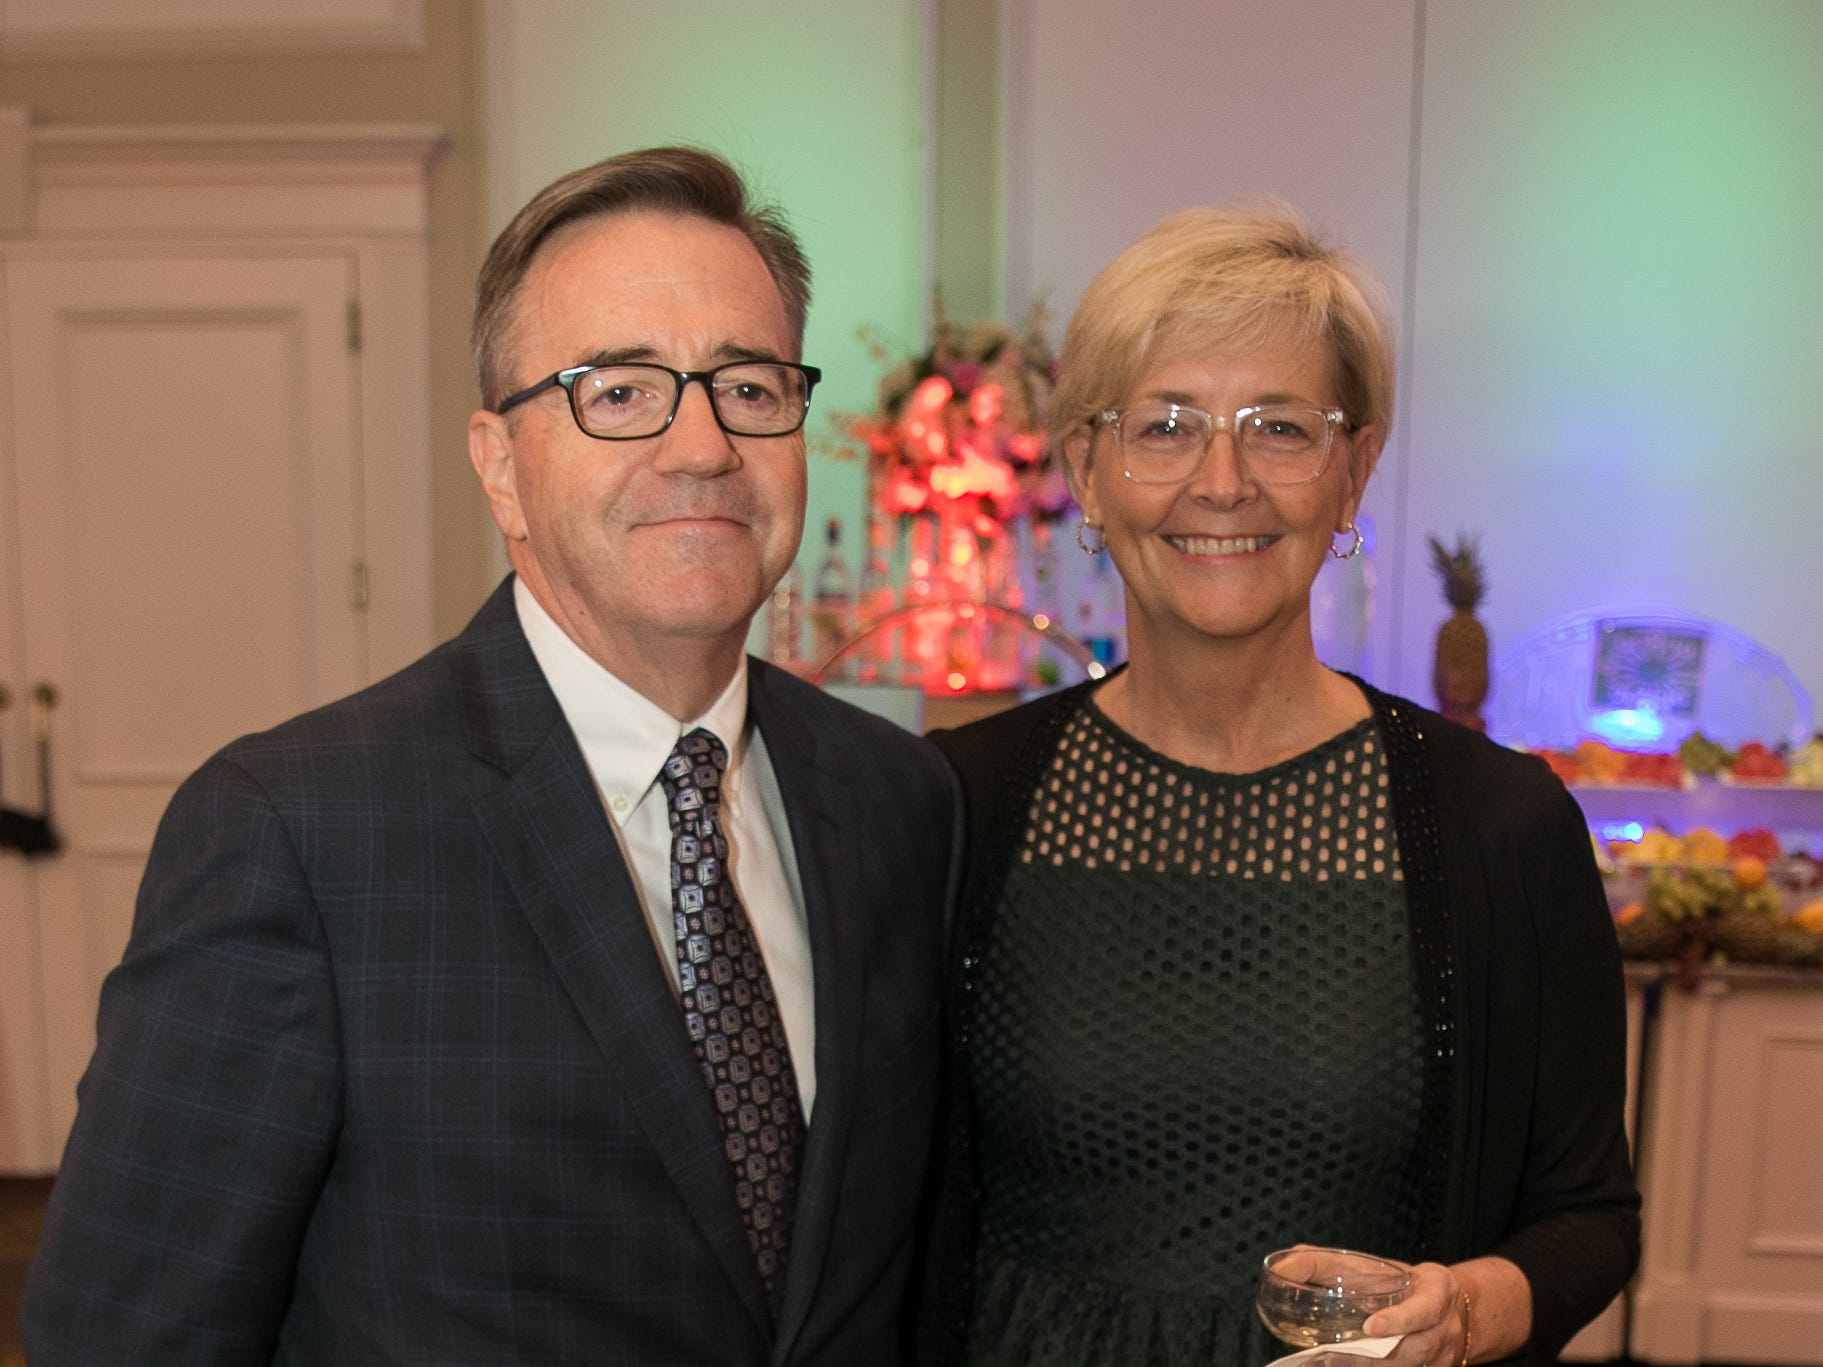 Tim and Jenny Regan. Bergen Family Center celebrated 120 years of service with dinner and a silent auction at Th e Rockleigh Country Club.11/1/2018